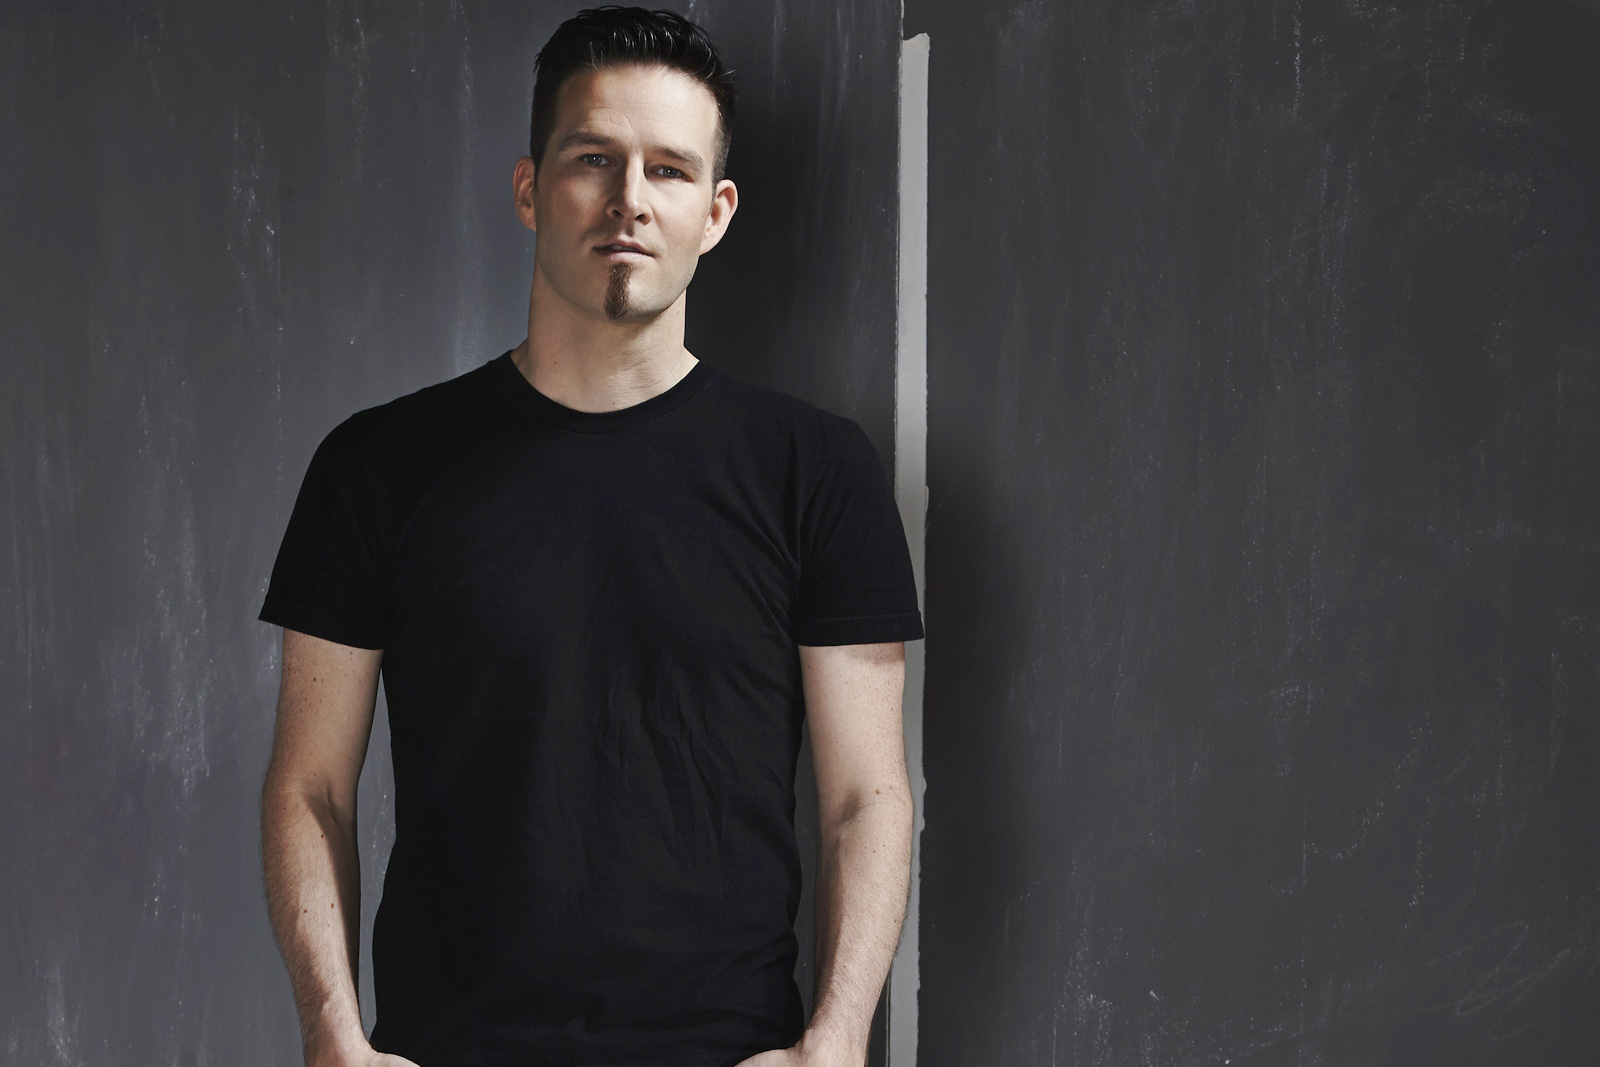 darude-interview-oz-edm